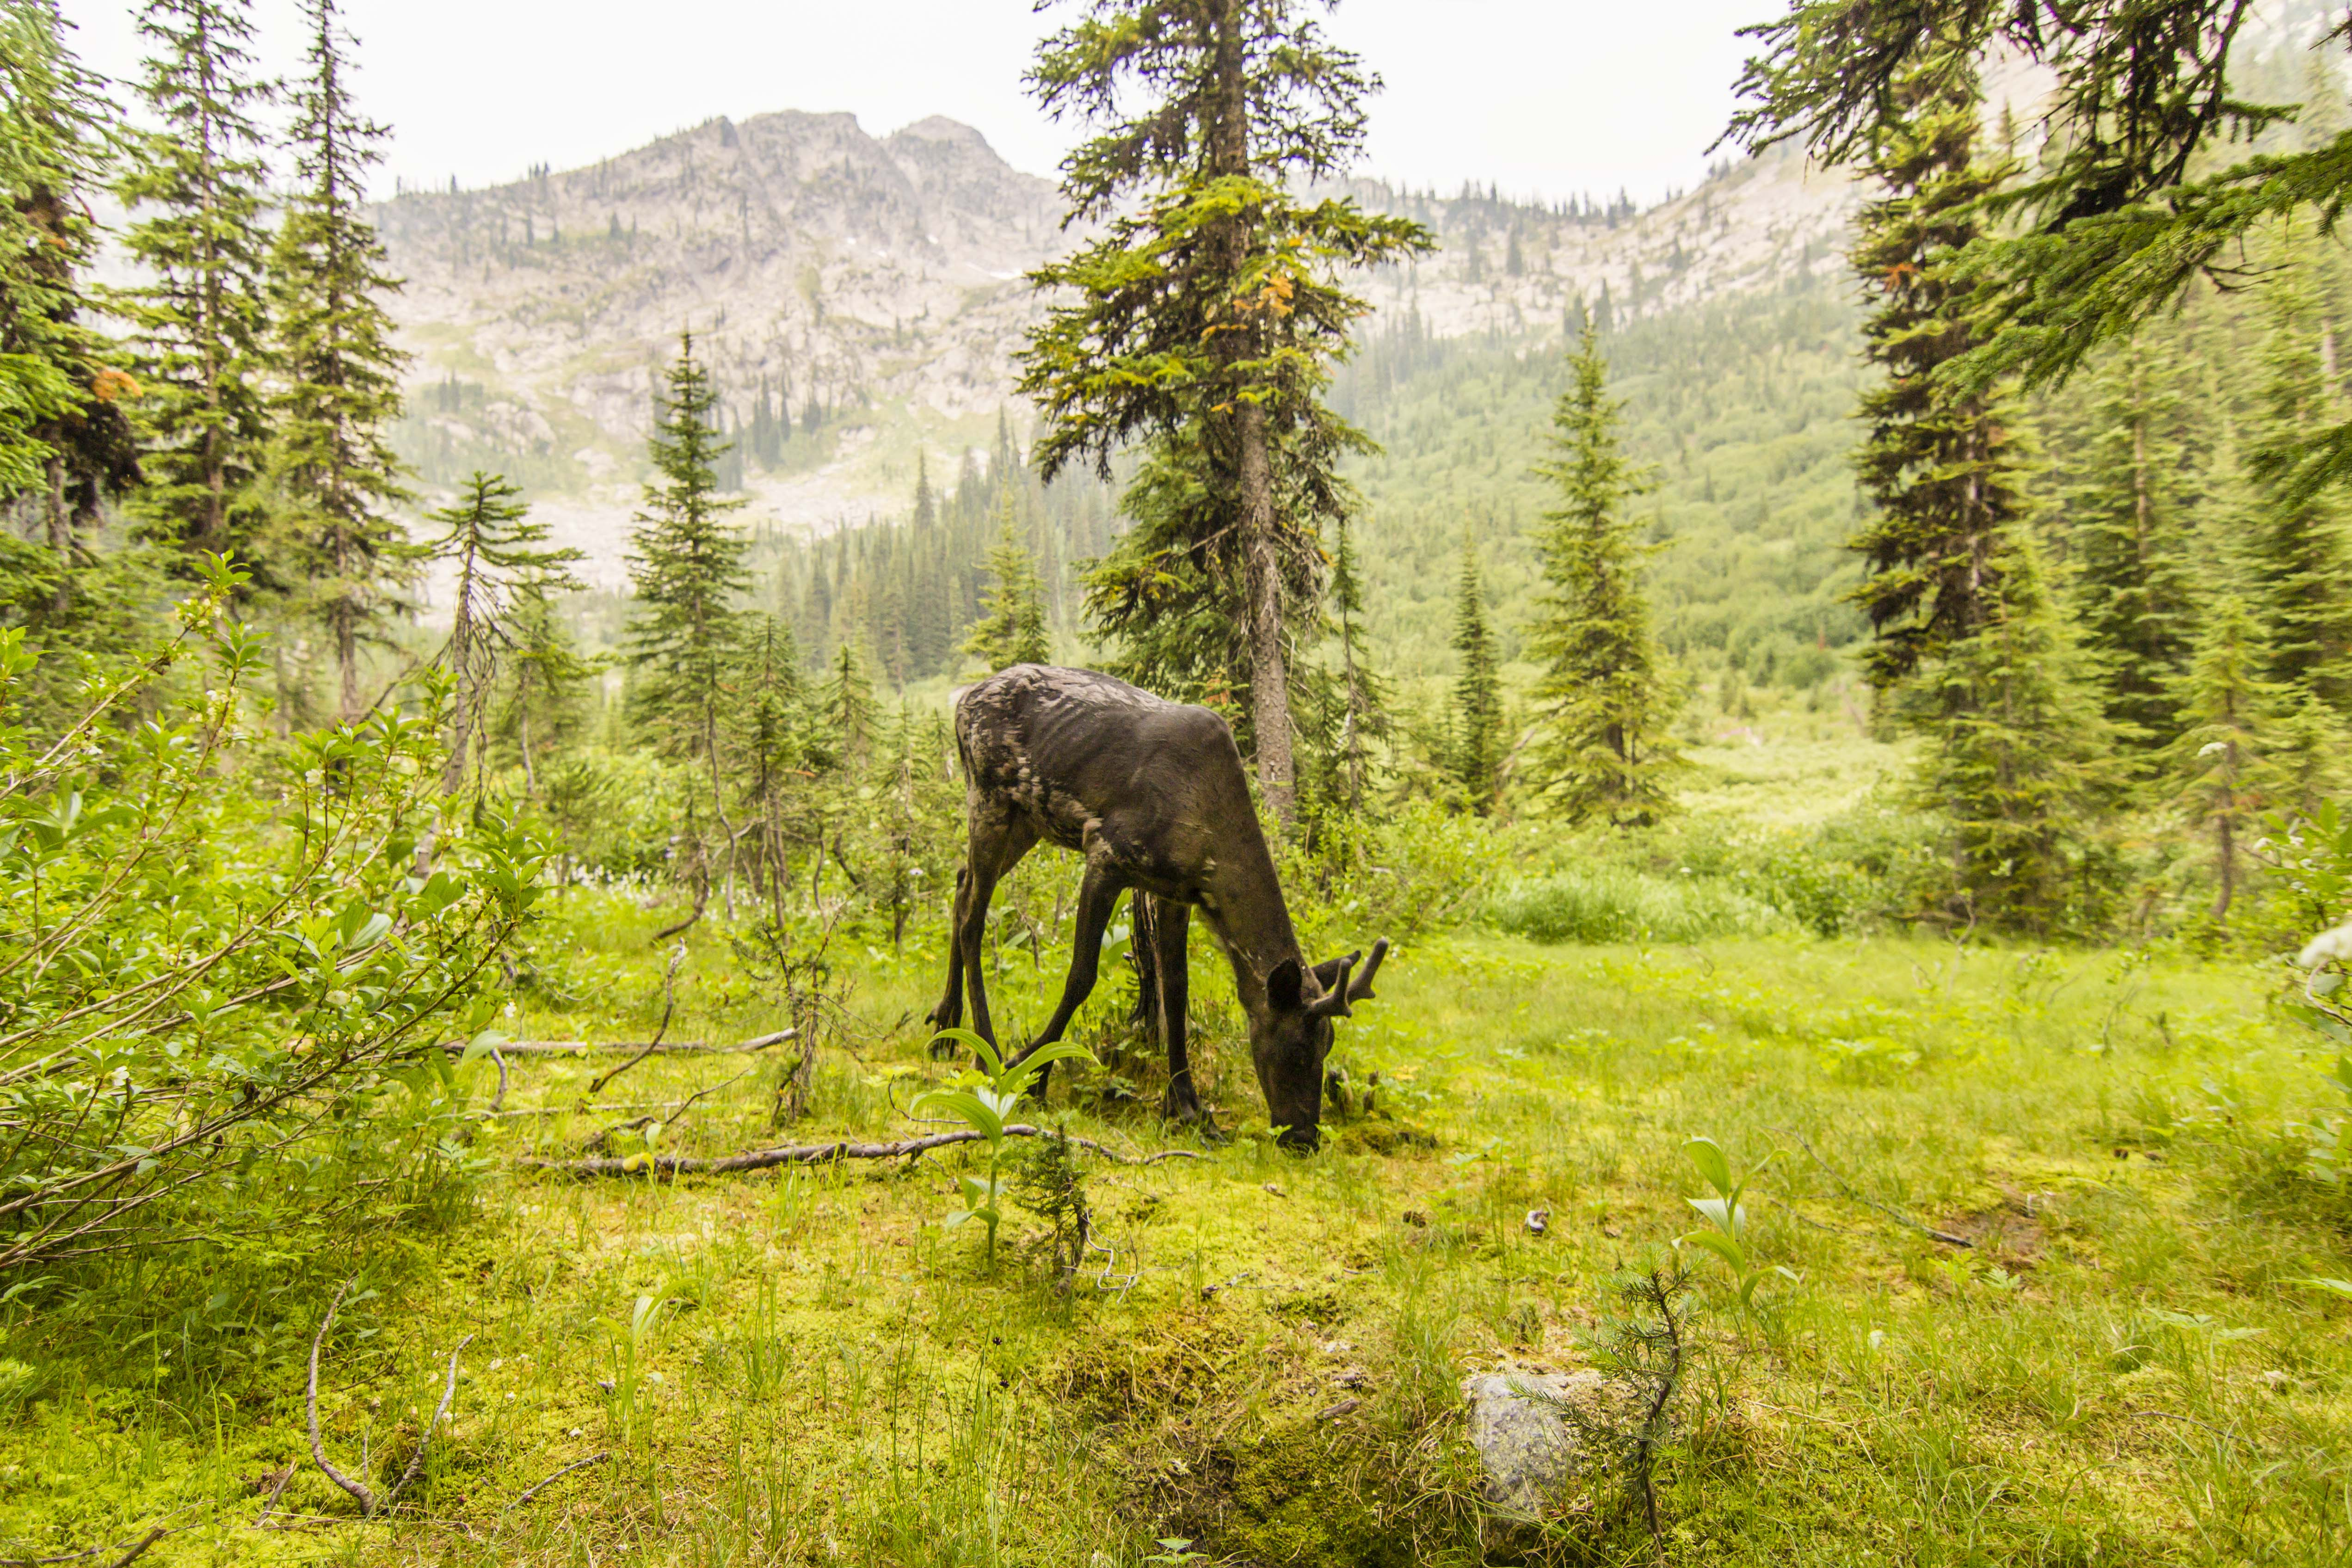 A mountain caribou grazes in the 'Caribou Rainforest,' one designation for the inland temperate rain forest spanning the Pacific Northwest and southern Canada.